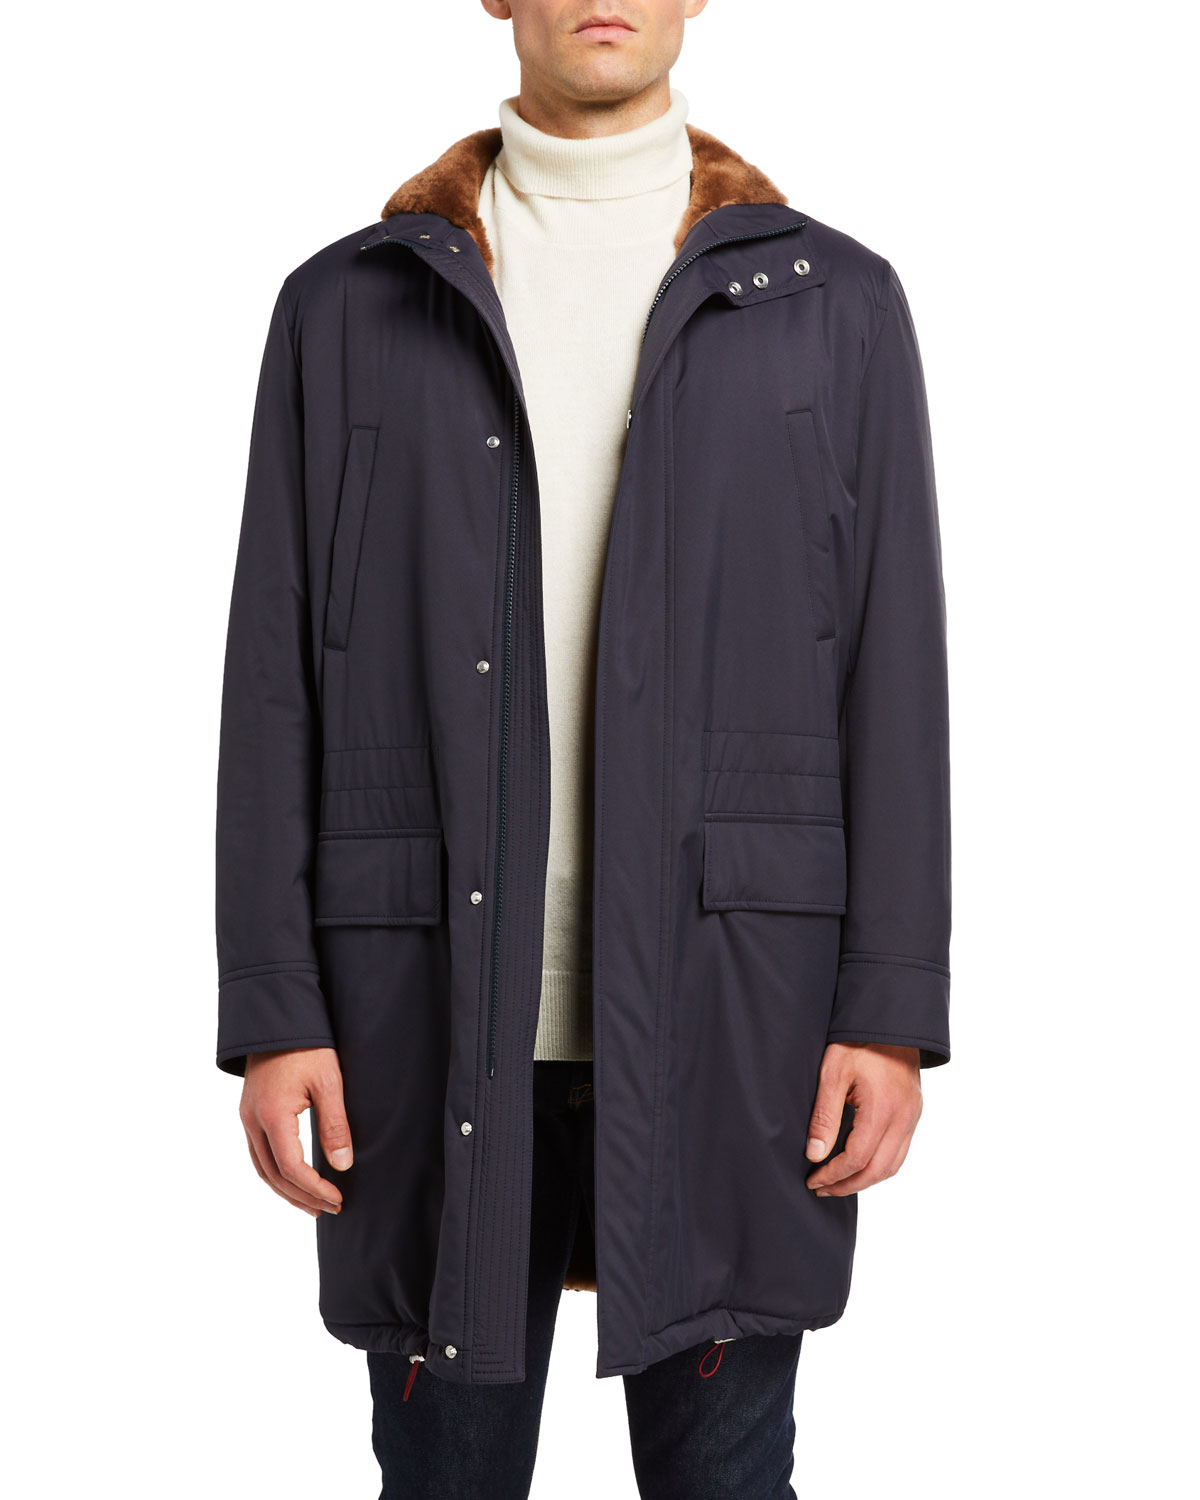 Men's Shearling-Lined Coat w/ Removable Hood